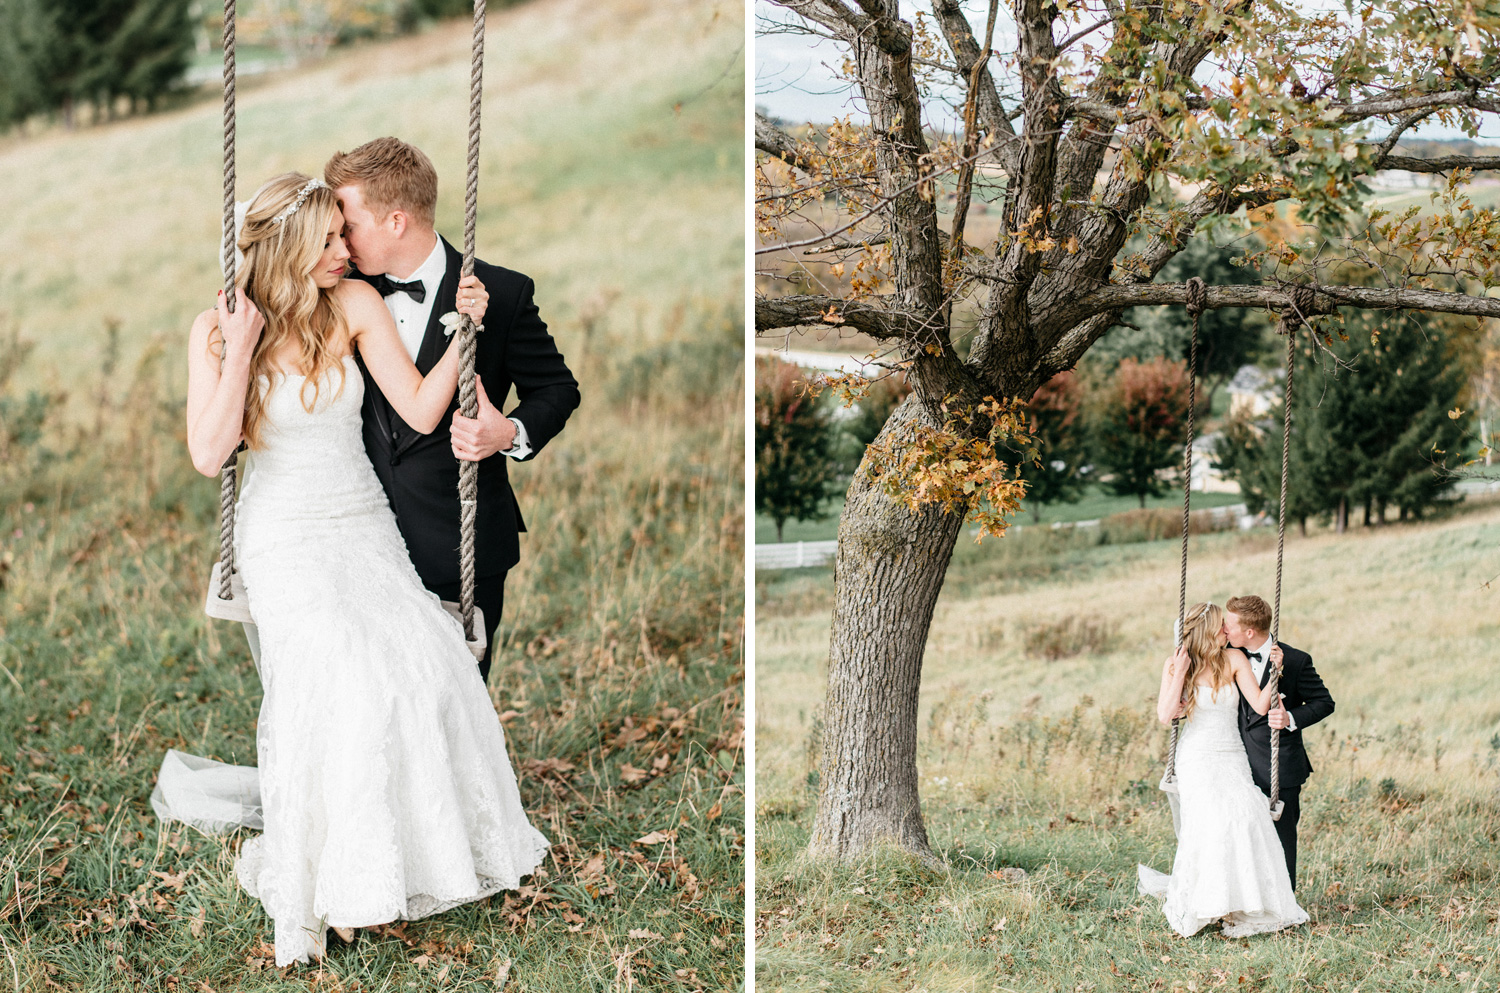 Bride and Groom Portrait on swing during Fall at Birch Hill Barn capture by Geneoh Photography